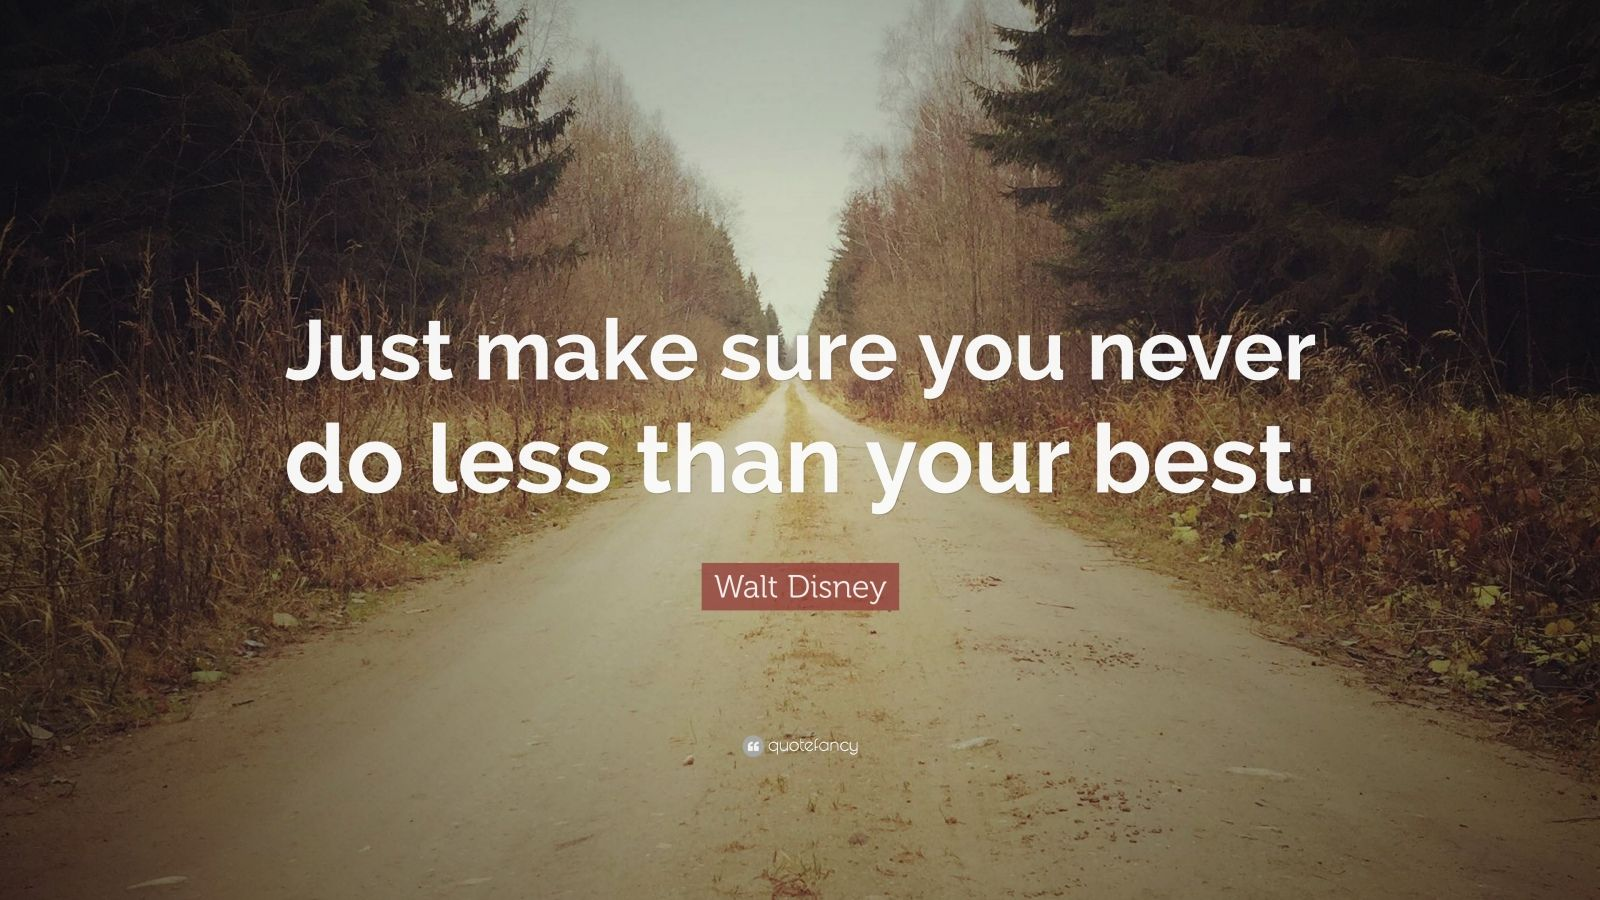 Exceptional Walt Disney Quote: U201cJust Make Sure You Never Do Less Than Your Best.